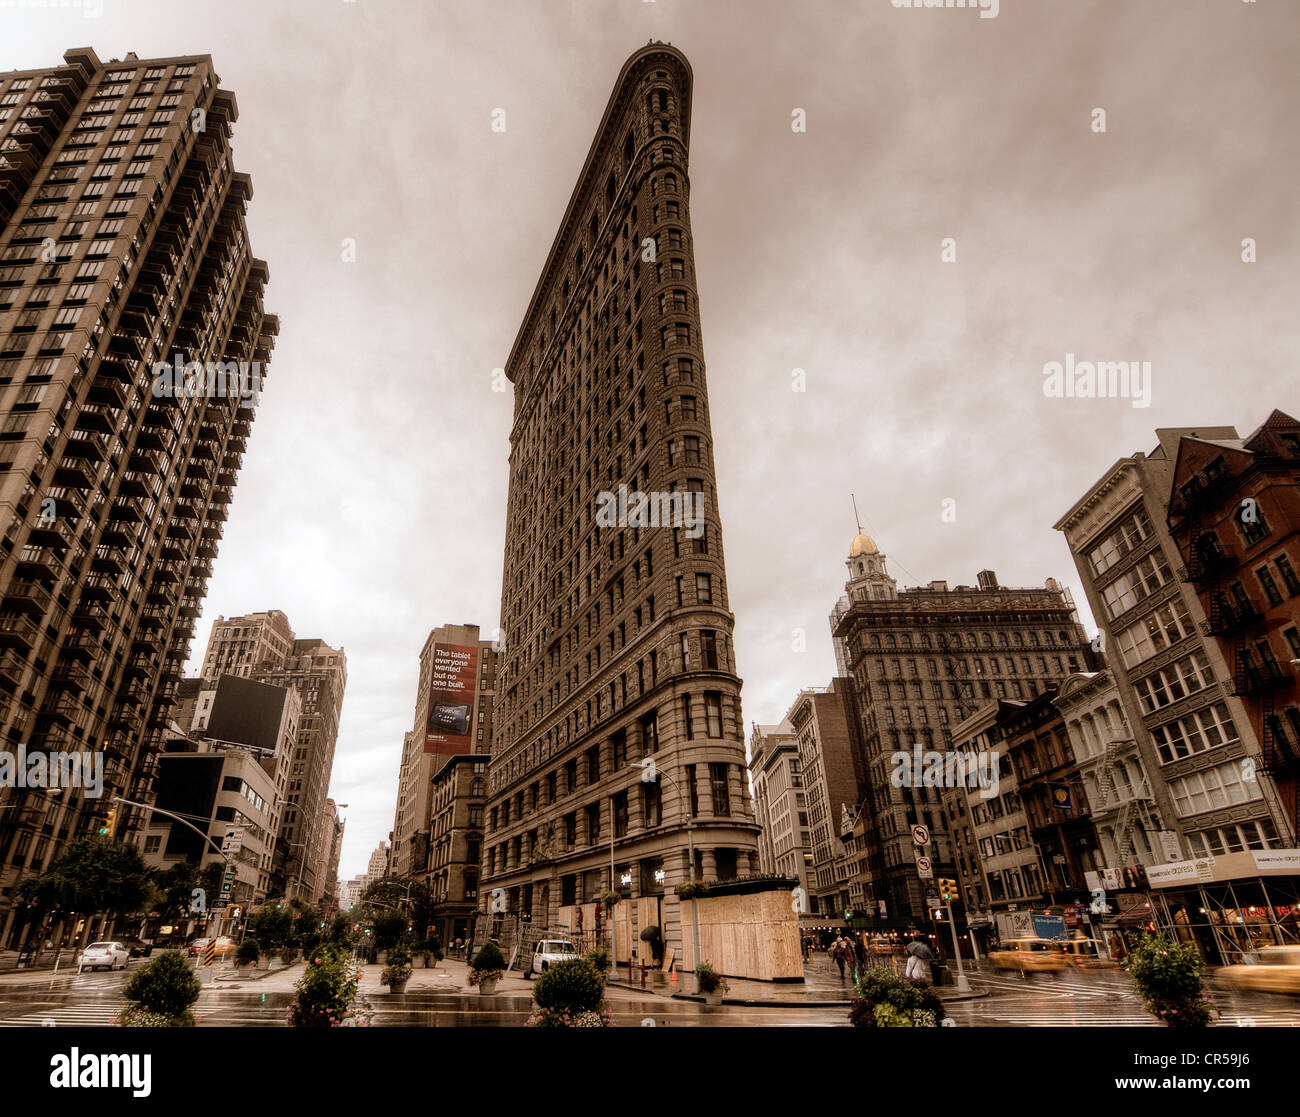 The Flatiron Building in New York City on a cloudy day. - Stock Image